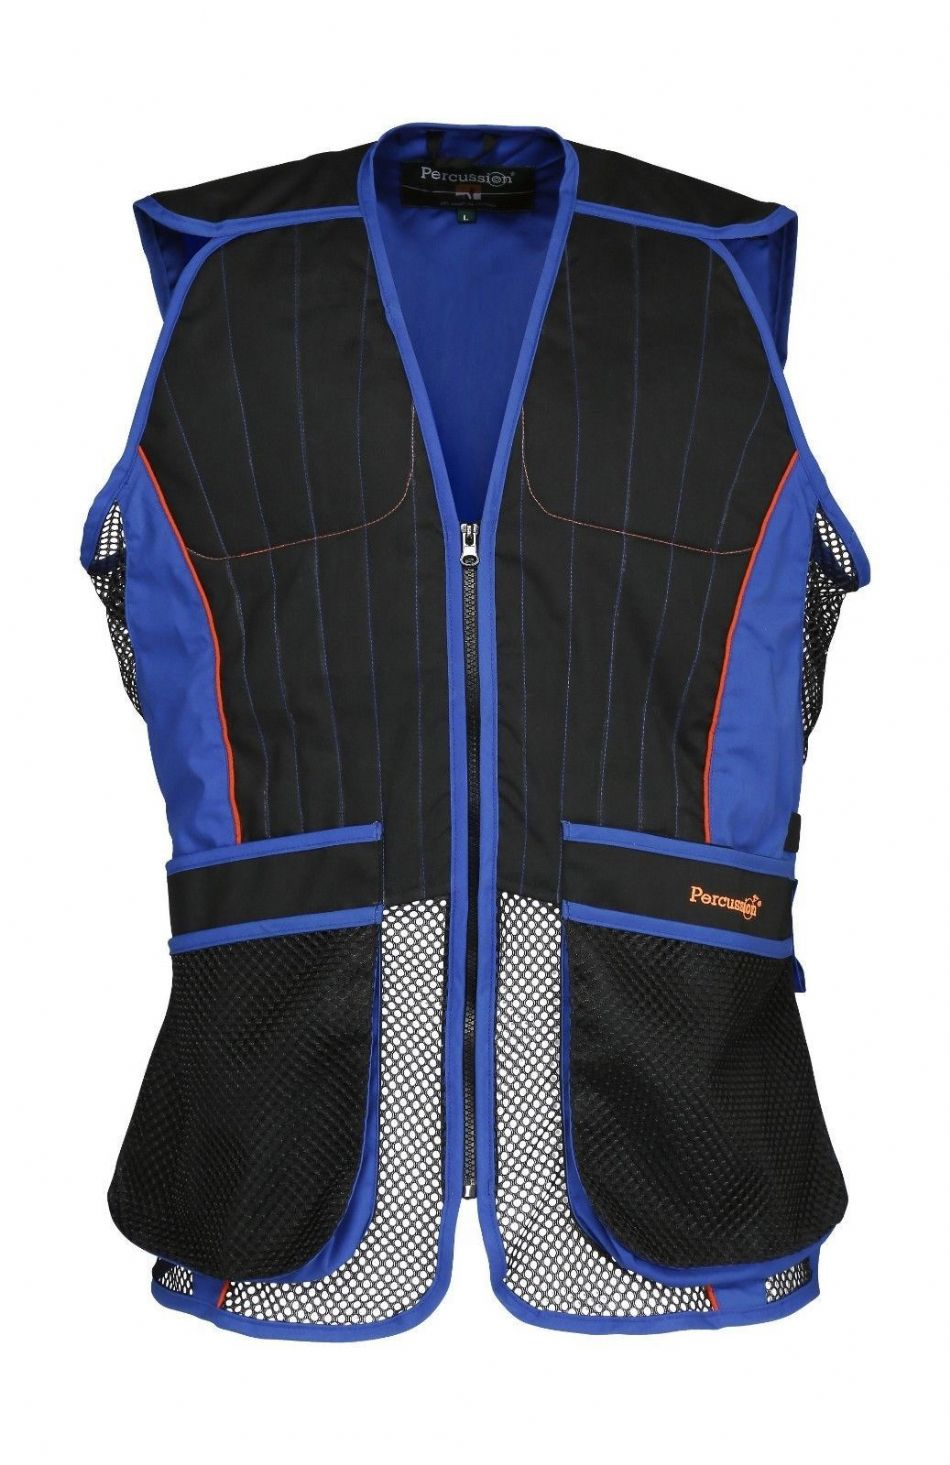 Percussion Blue Black Clay Pigeon Shooting Skeet Trap Vest Ambidextrous New